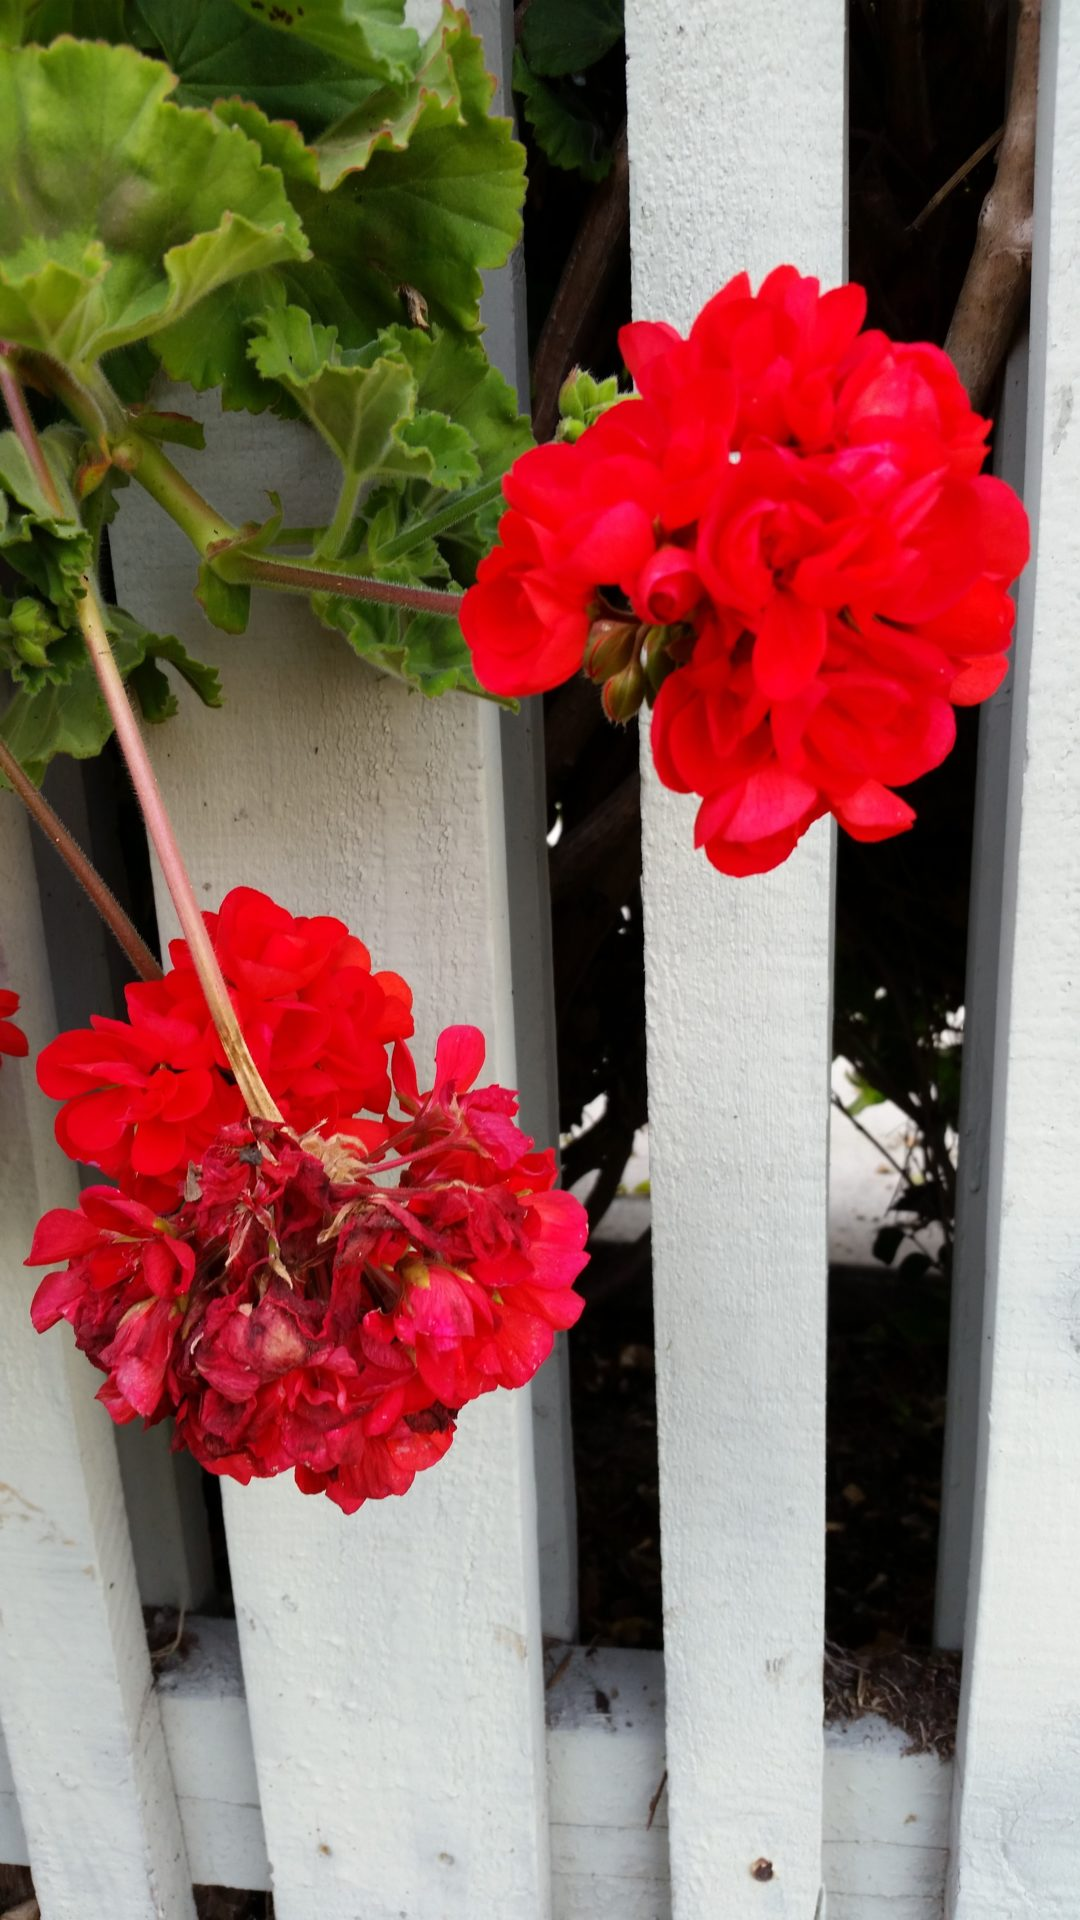 Neighborhood Geraniums